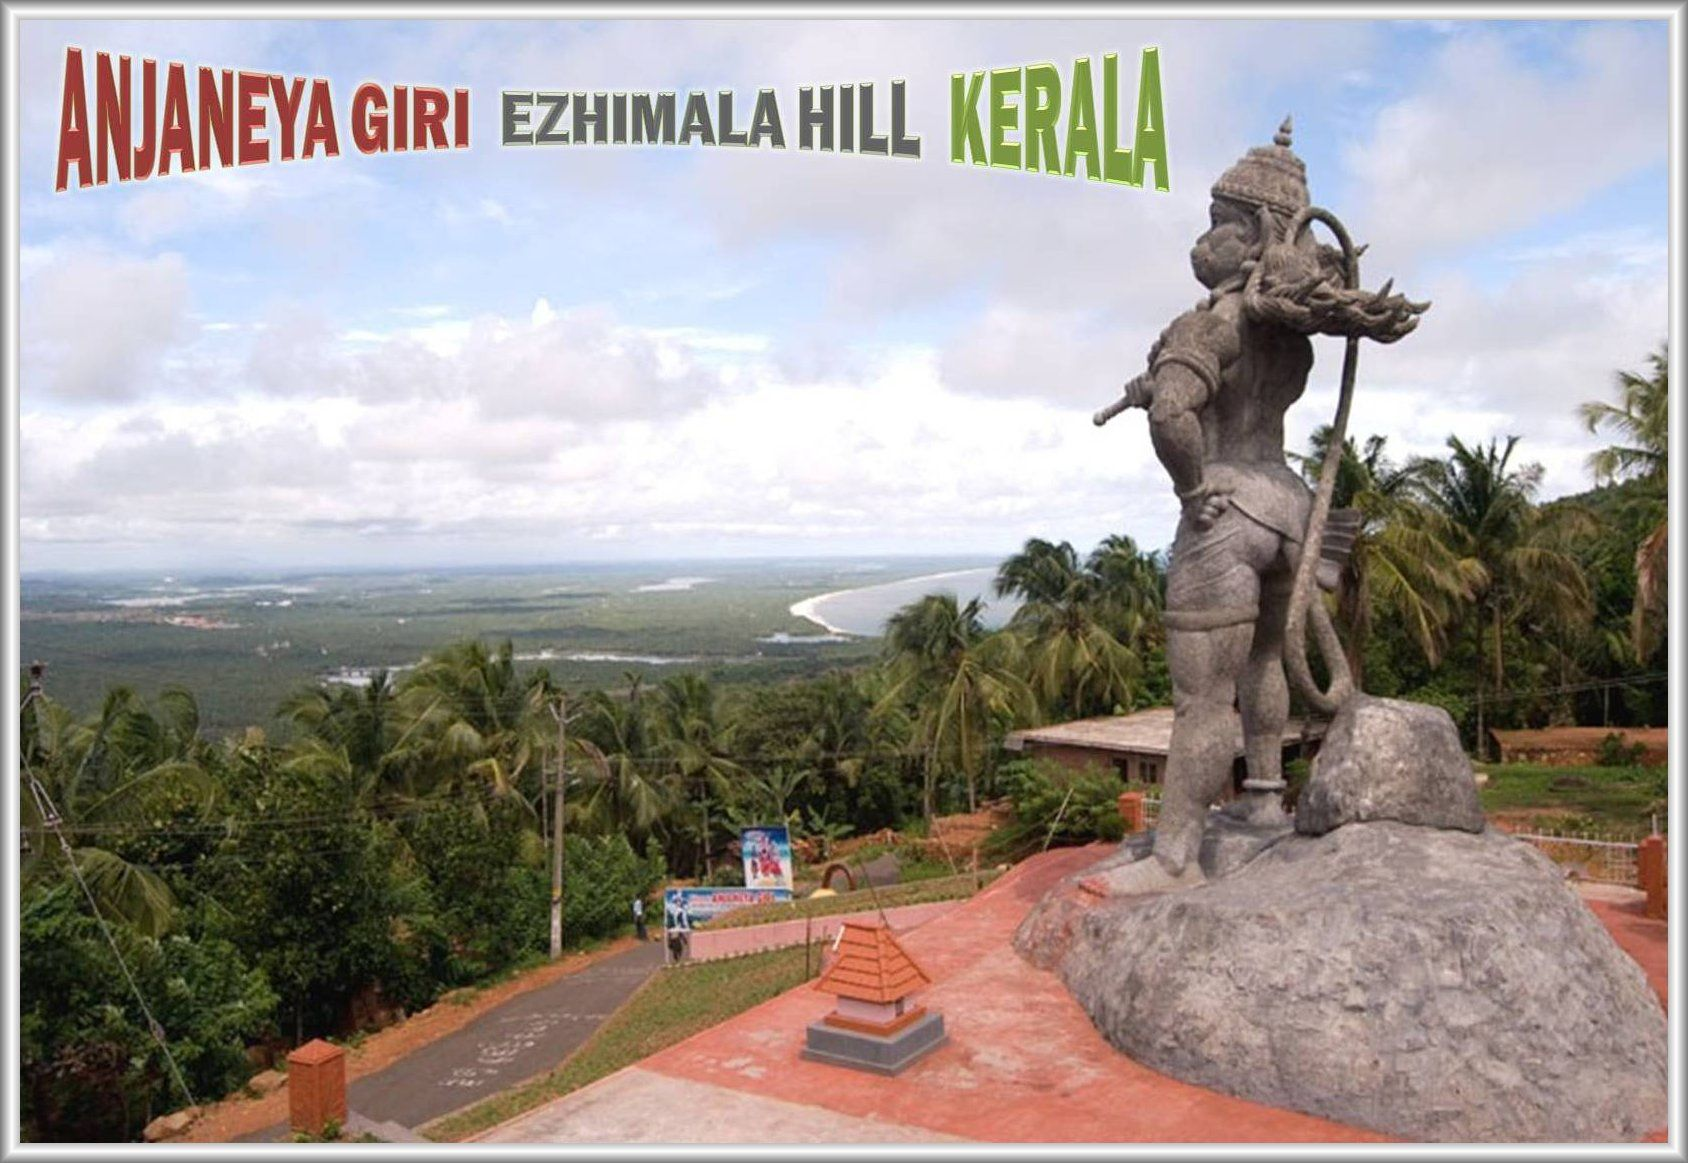 41 feet height sky high statue of Lord Veer Hanuman is located at 1688x1163